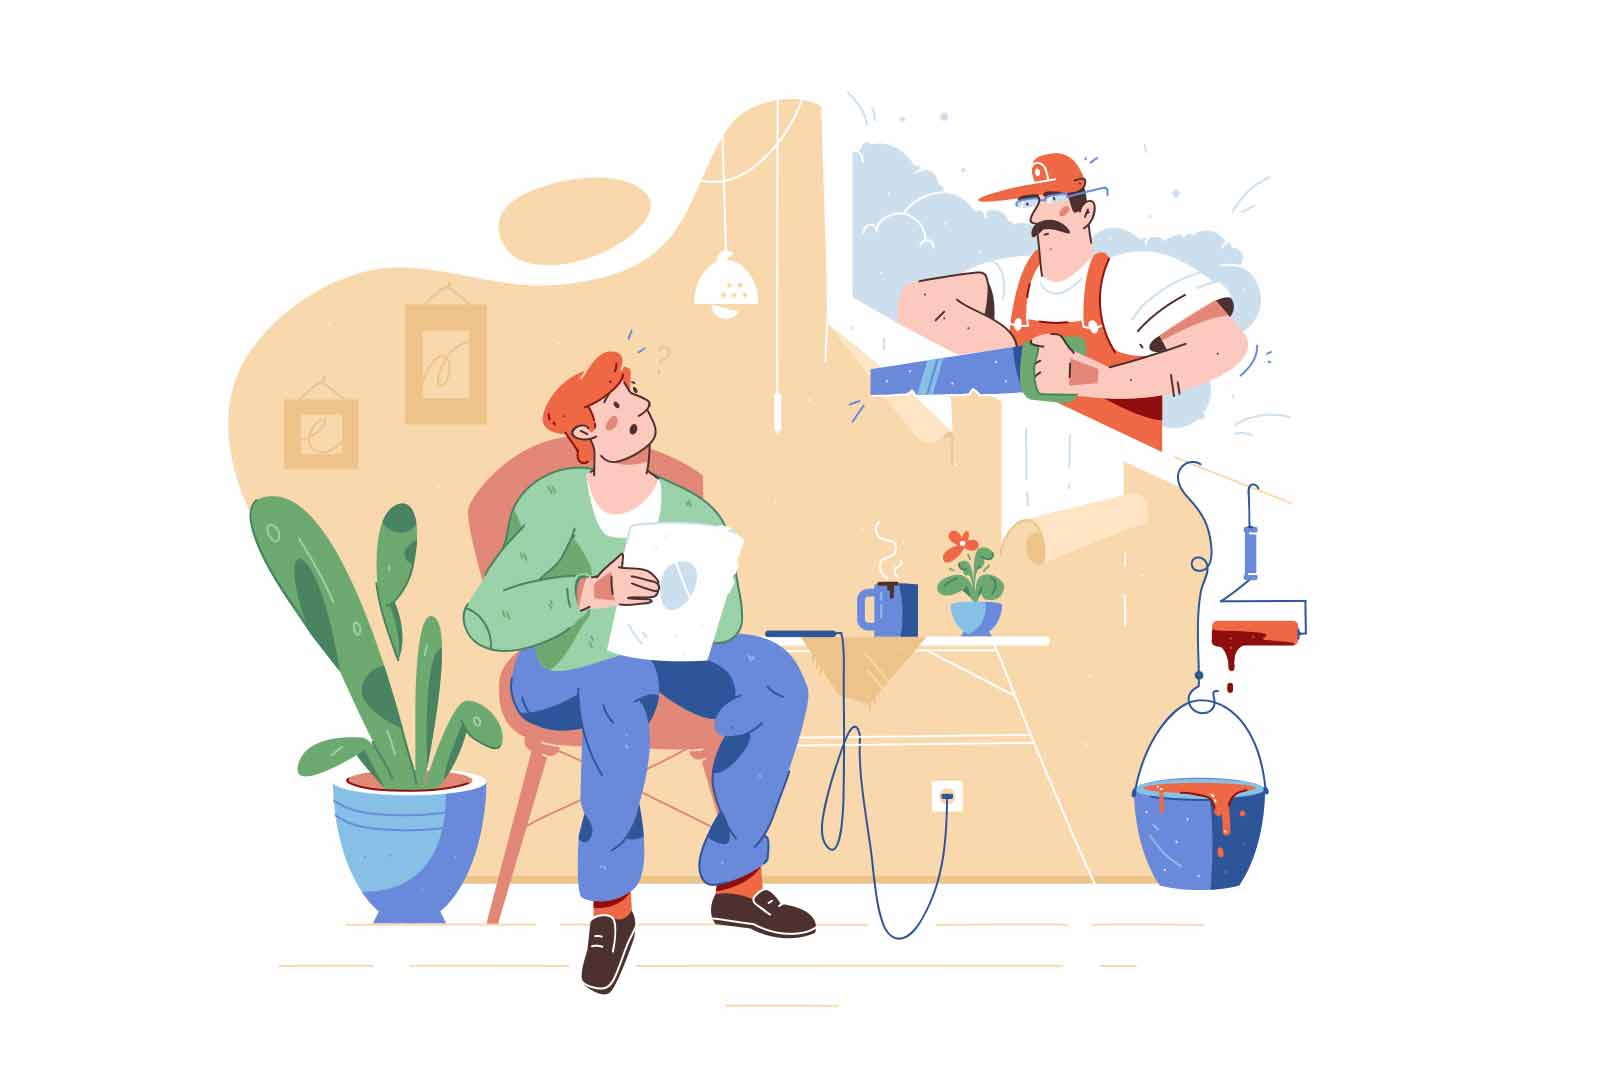 Worker using saw for repairing work at home vector illustration. Owner read newspaper flat style. Renovation, change interior design concept